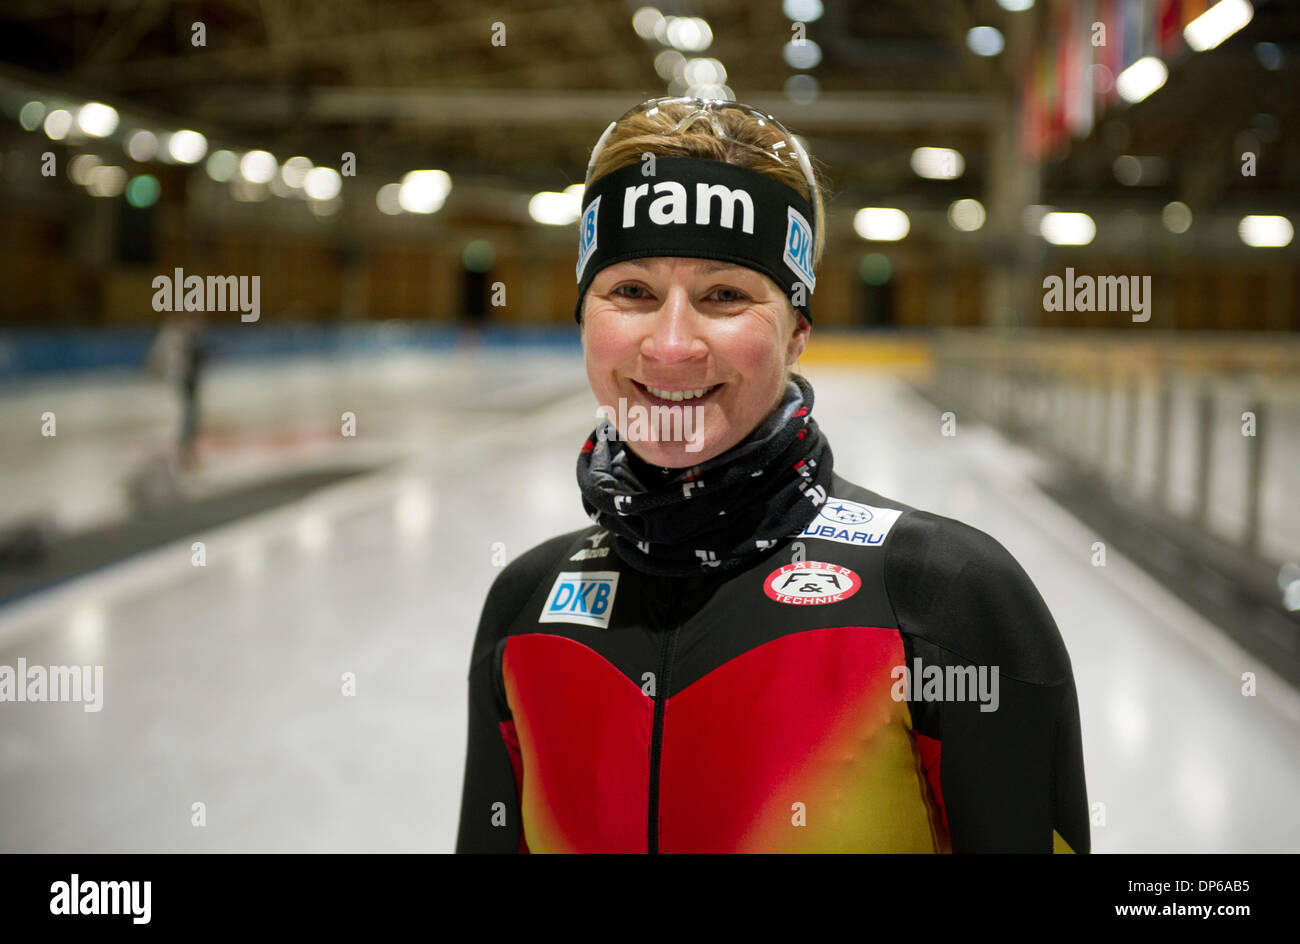 Claudia Pechstein Stock Photos & Claudia Pechstein Stock ...